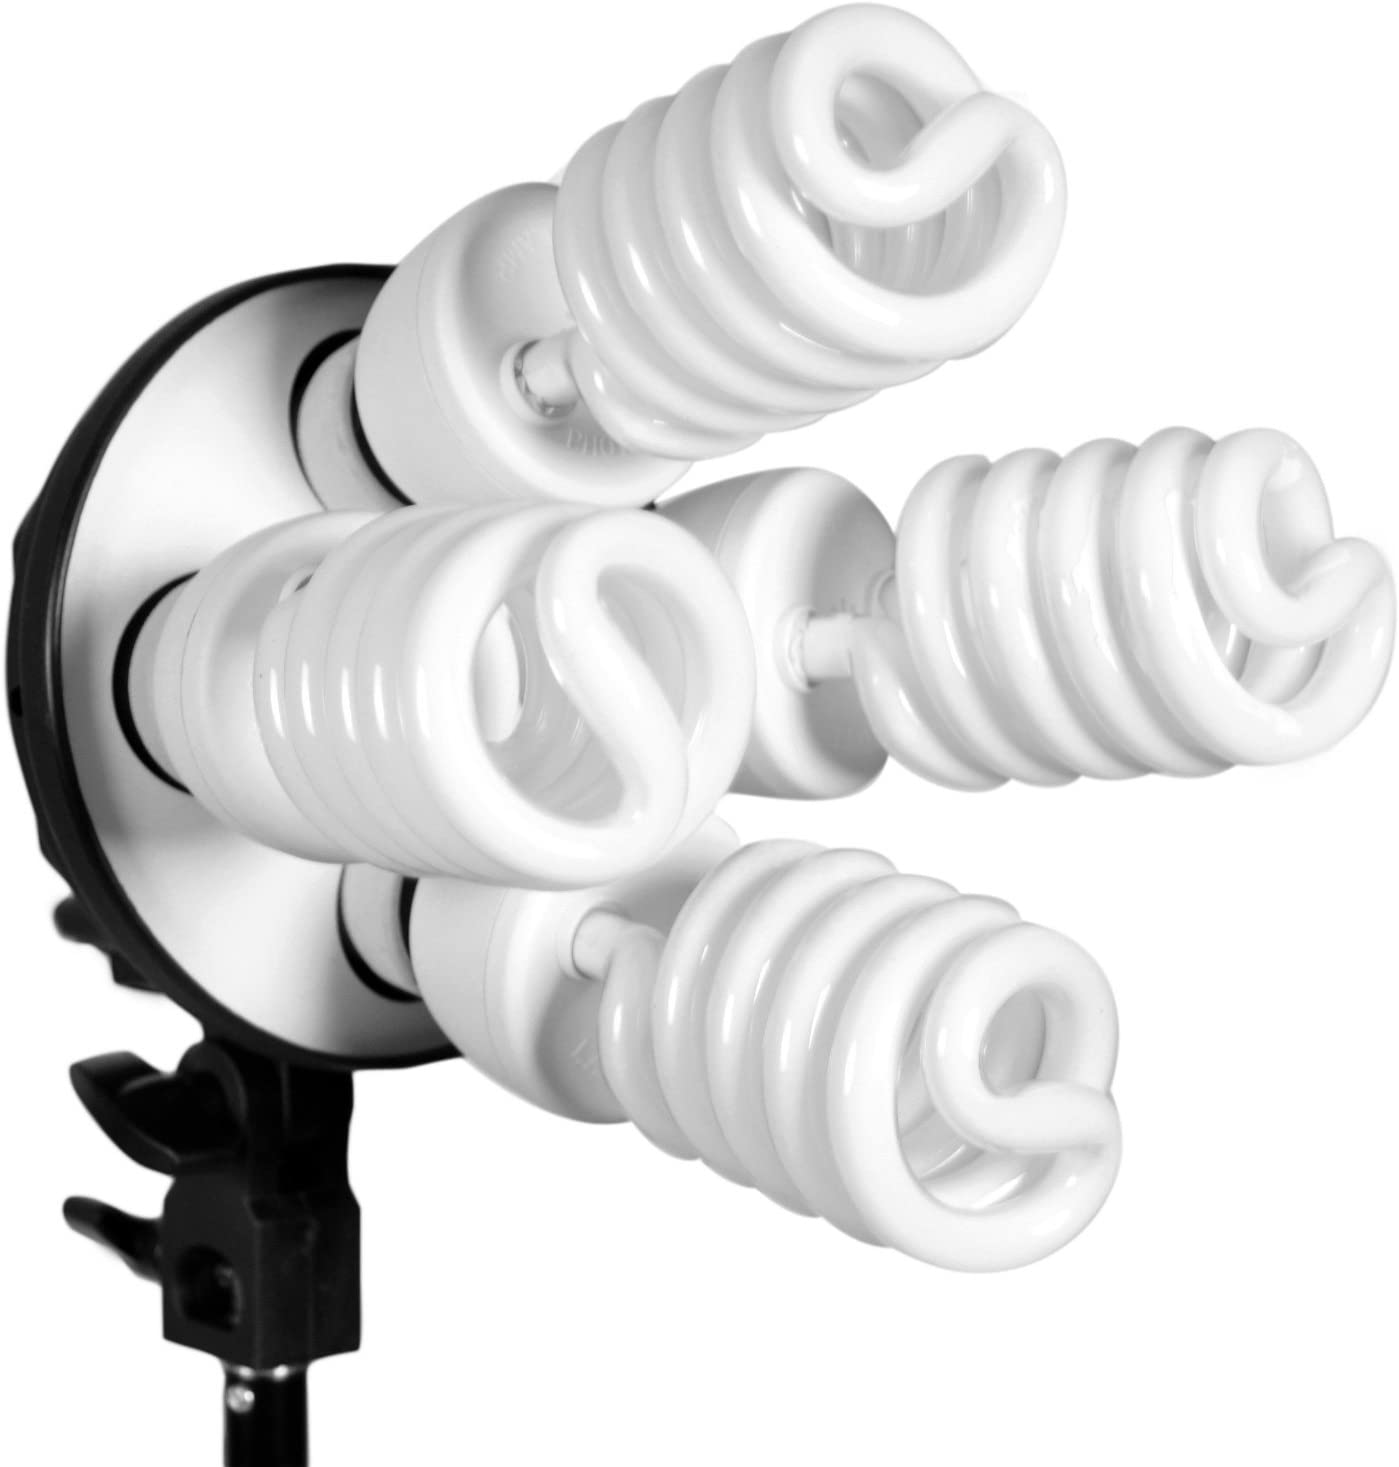 CanadianStudio 2400 Watt Digital Video Photography Portrait Light Continuous Softbox Lighting Kit and Boom Set with High Key Muslin White//Black Screen Backdrop Stand kit